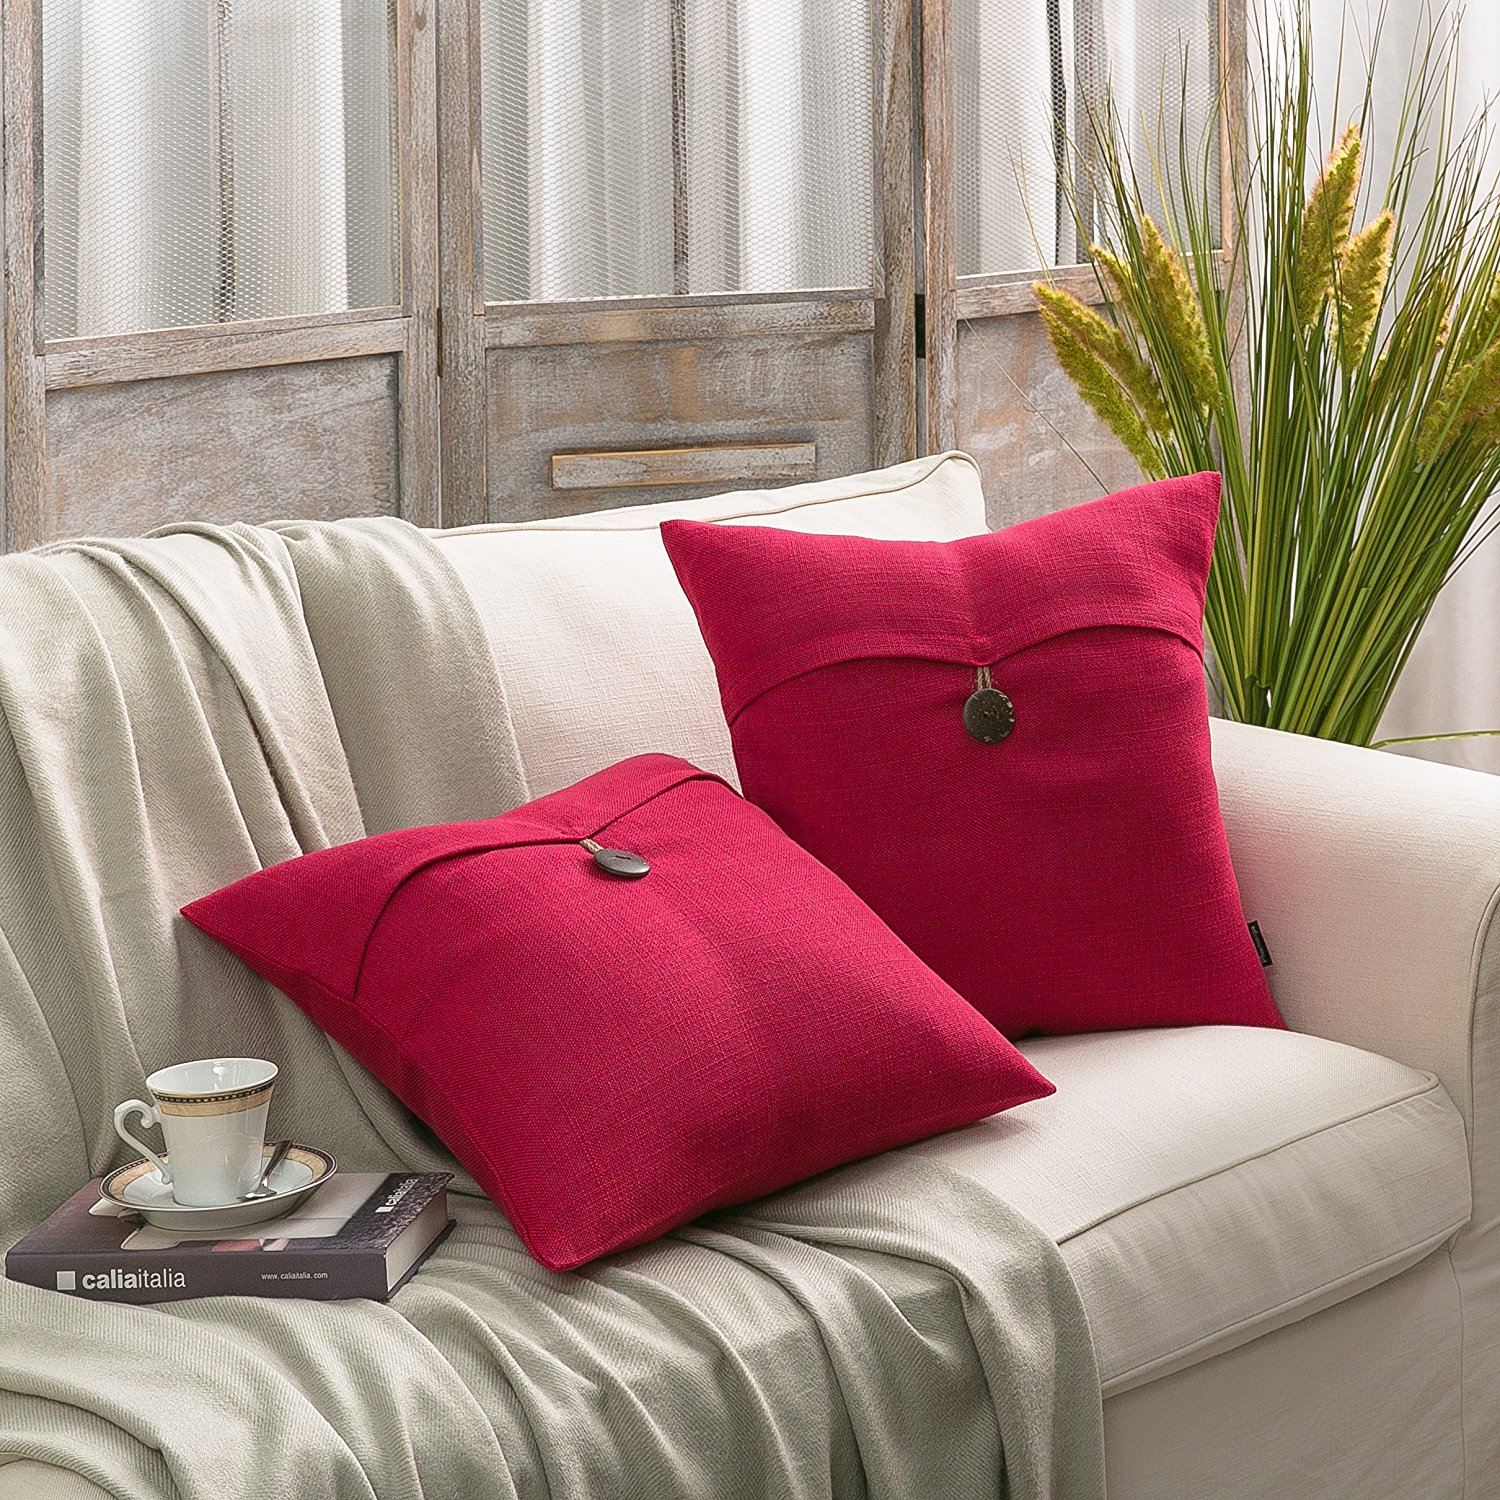 Phantoscope Decorative Button Throw Pillow Cover Set of 2 (Red) by